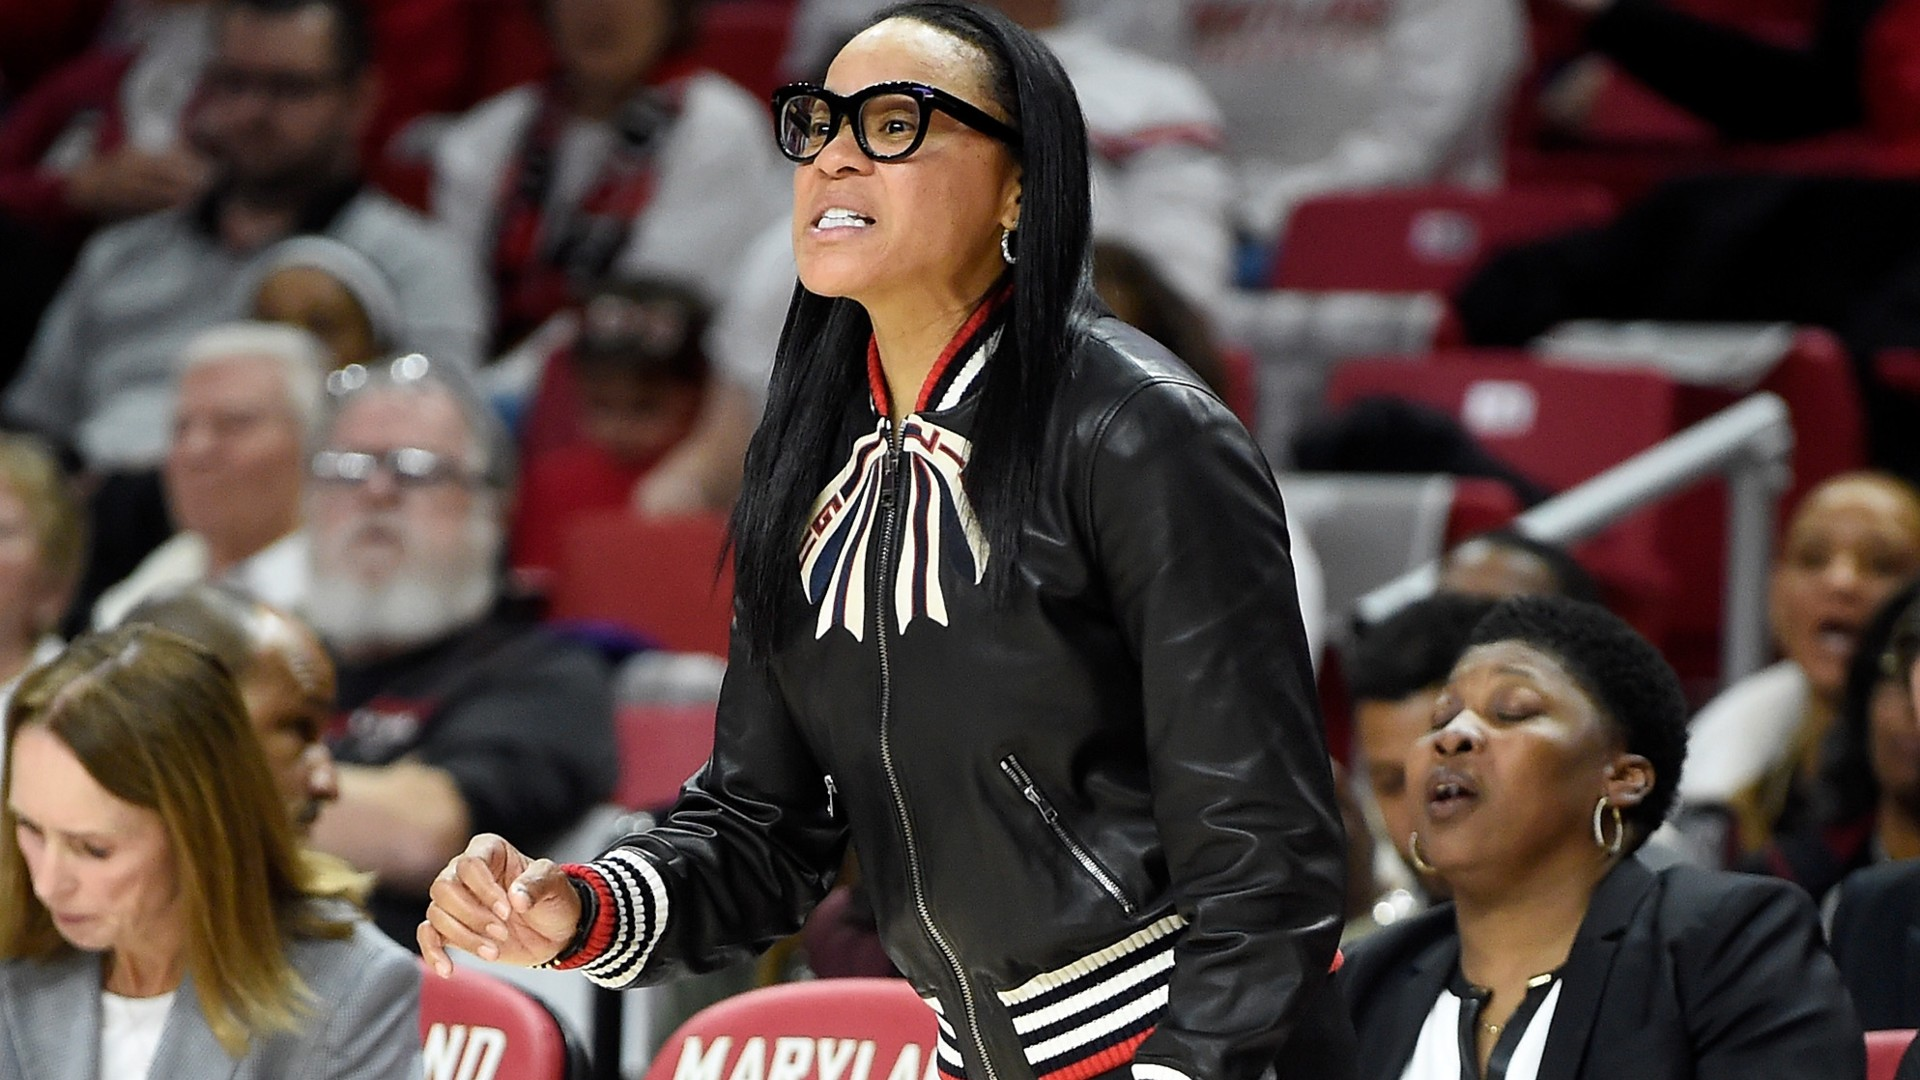 Dawn Staley of South Carolina has ripped off the NCAA for unbalanced conditions in the women's championship